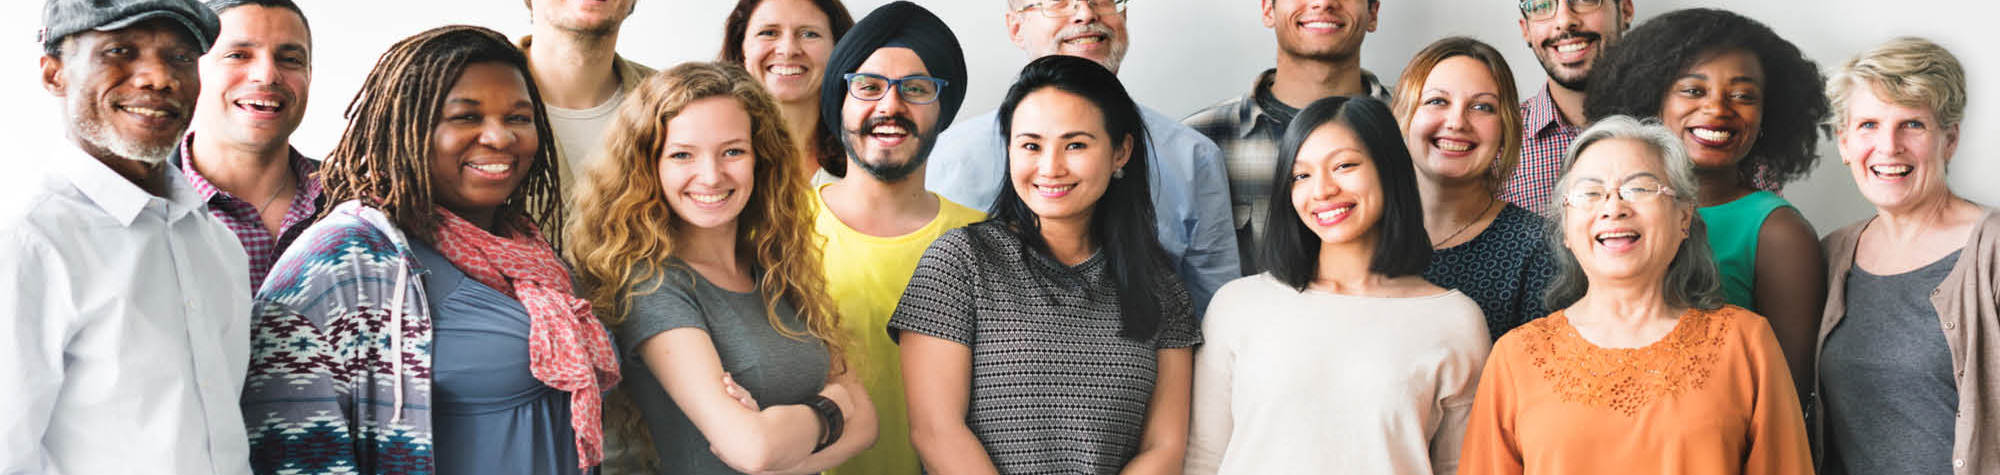 Search Consultancy's 2015 Blog Page Header Image. Diverse group of females and males all smiling representing the exceptional people Search Consultancy employ and recruit.